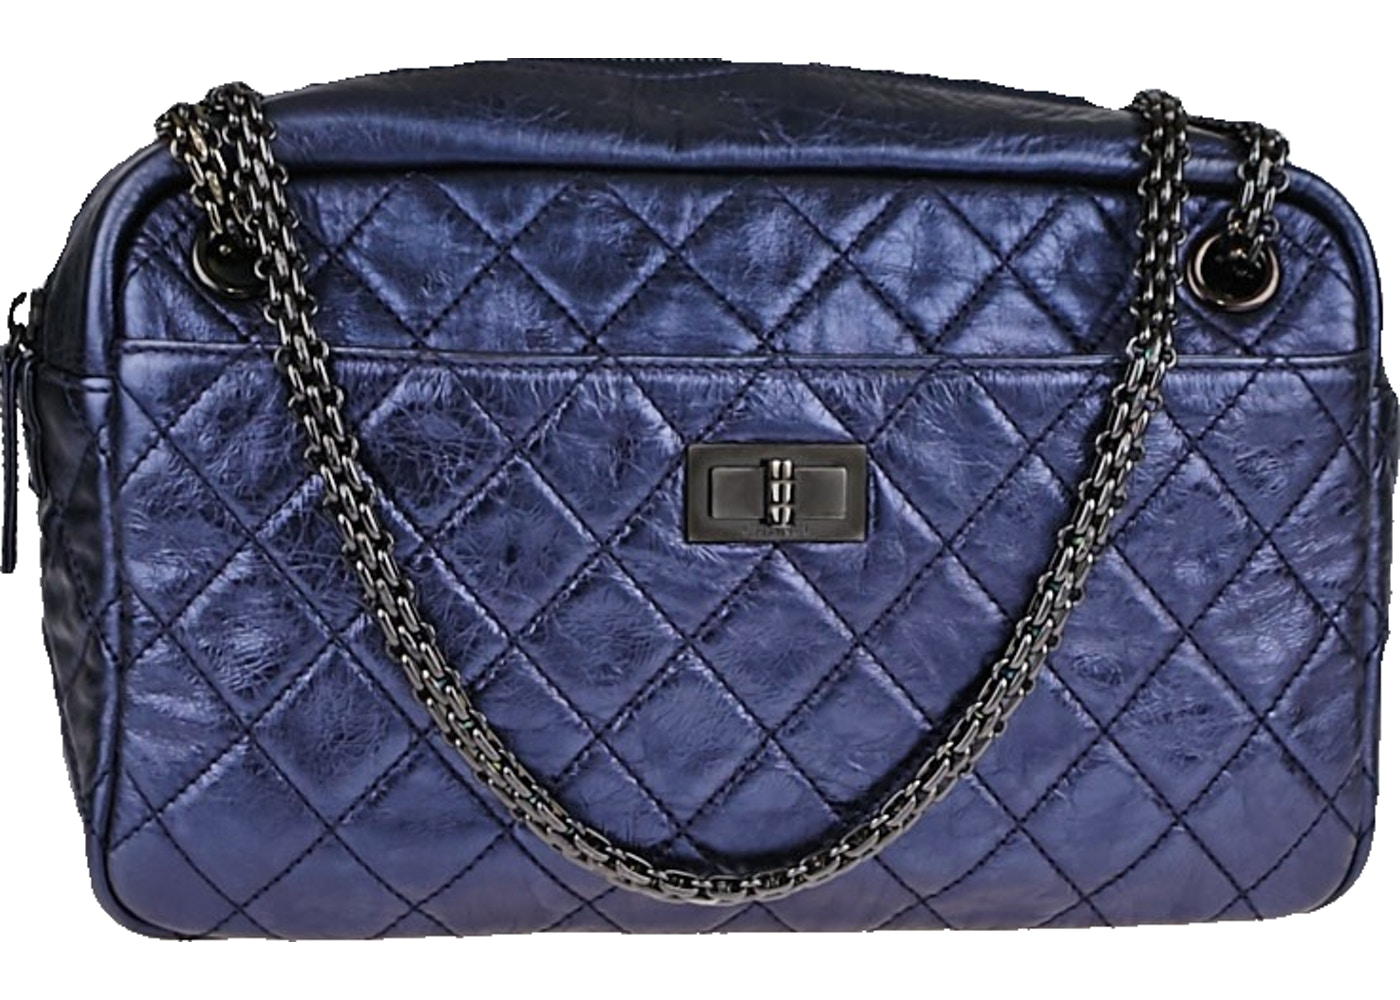 22216a1dcf97 Chanel Reissue Camera bag Quilted Metallic Medium Blue